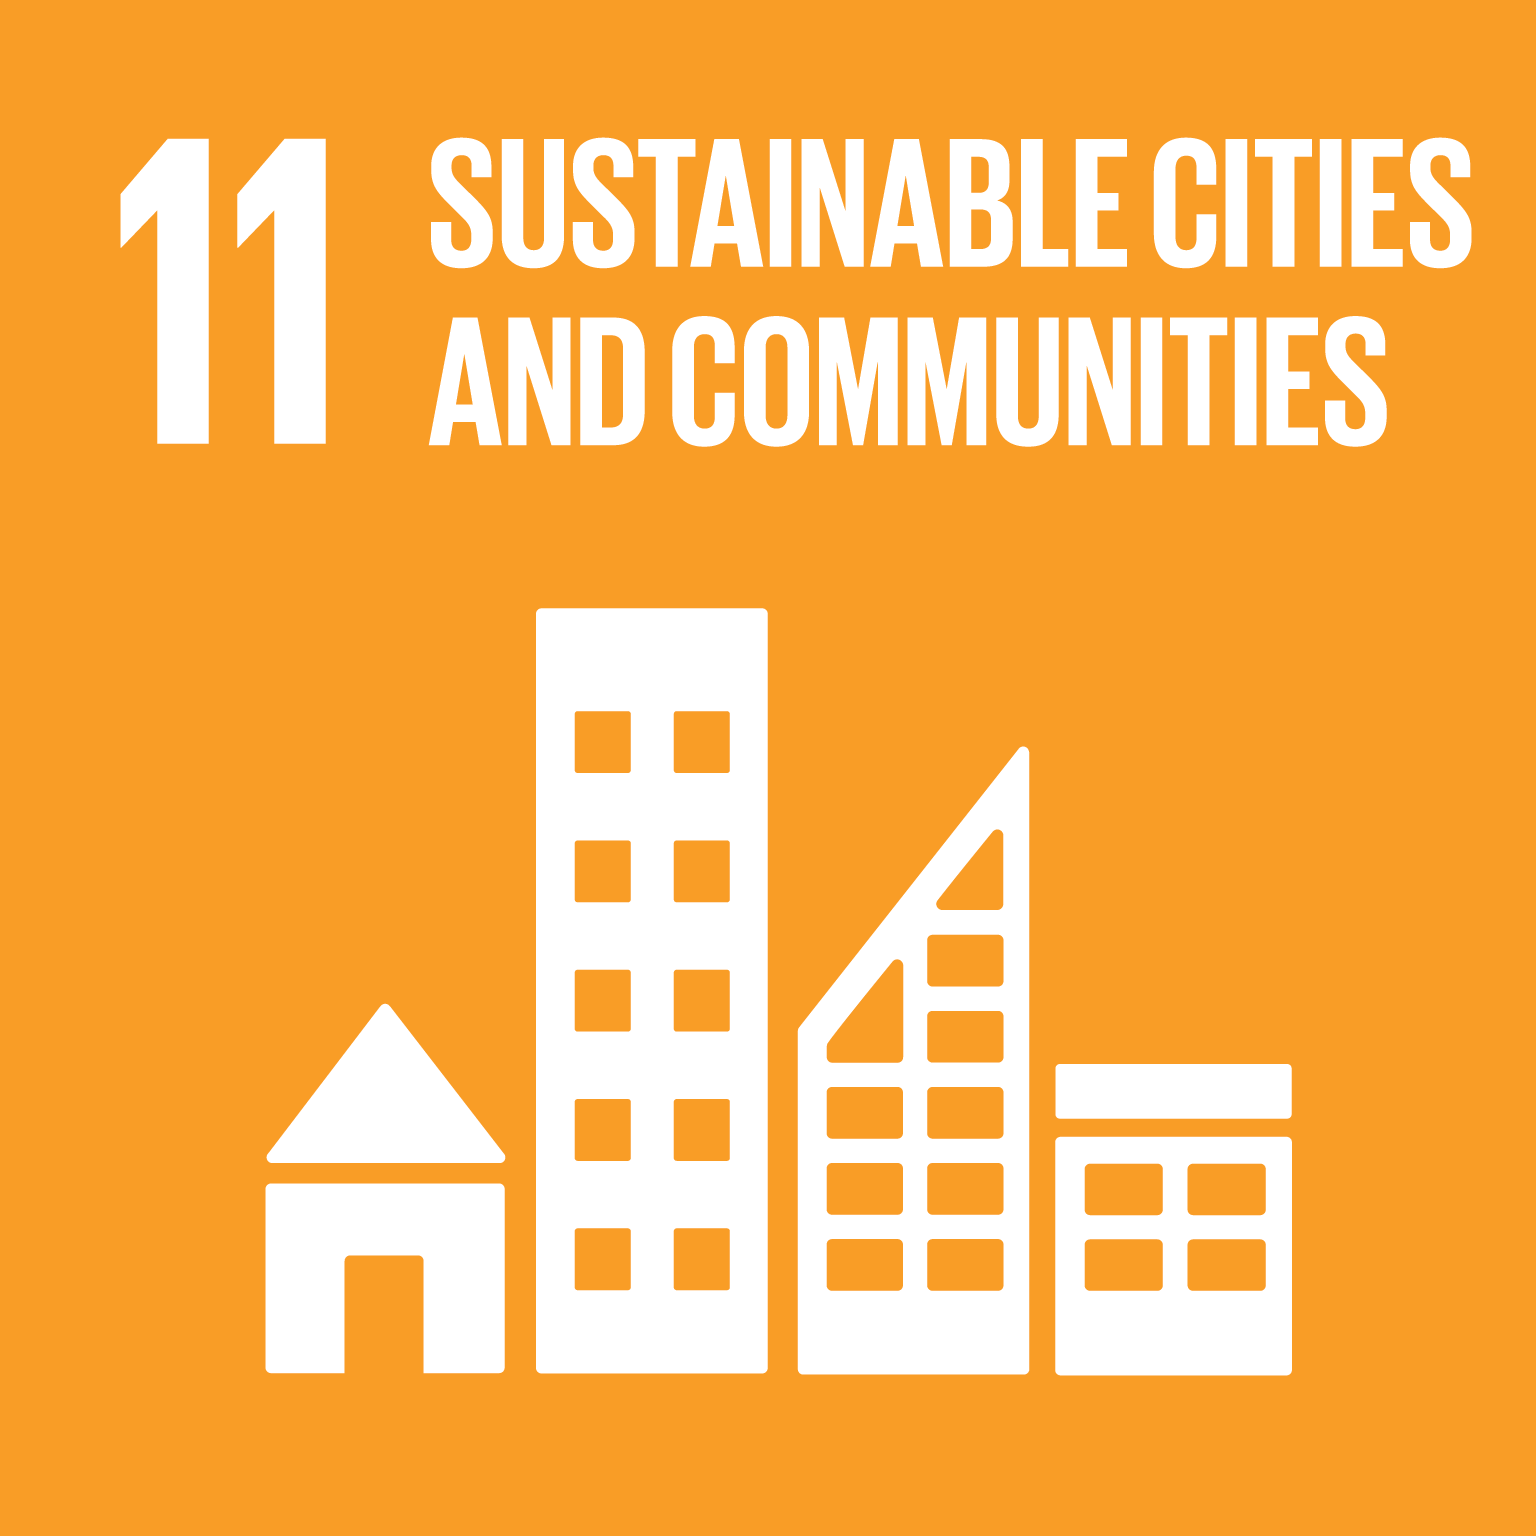 U.N. SDG goal 11, sustainable cities and communities